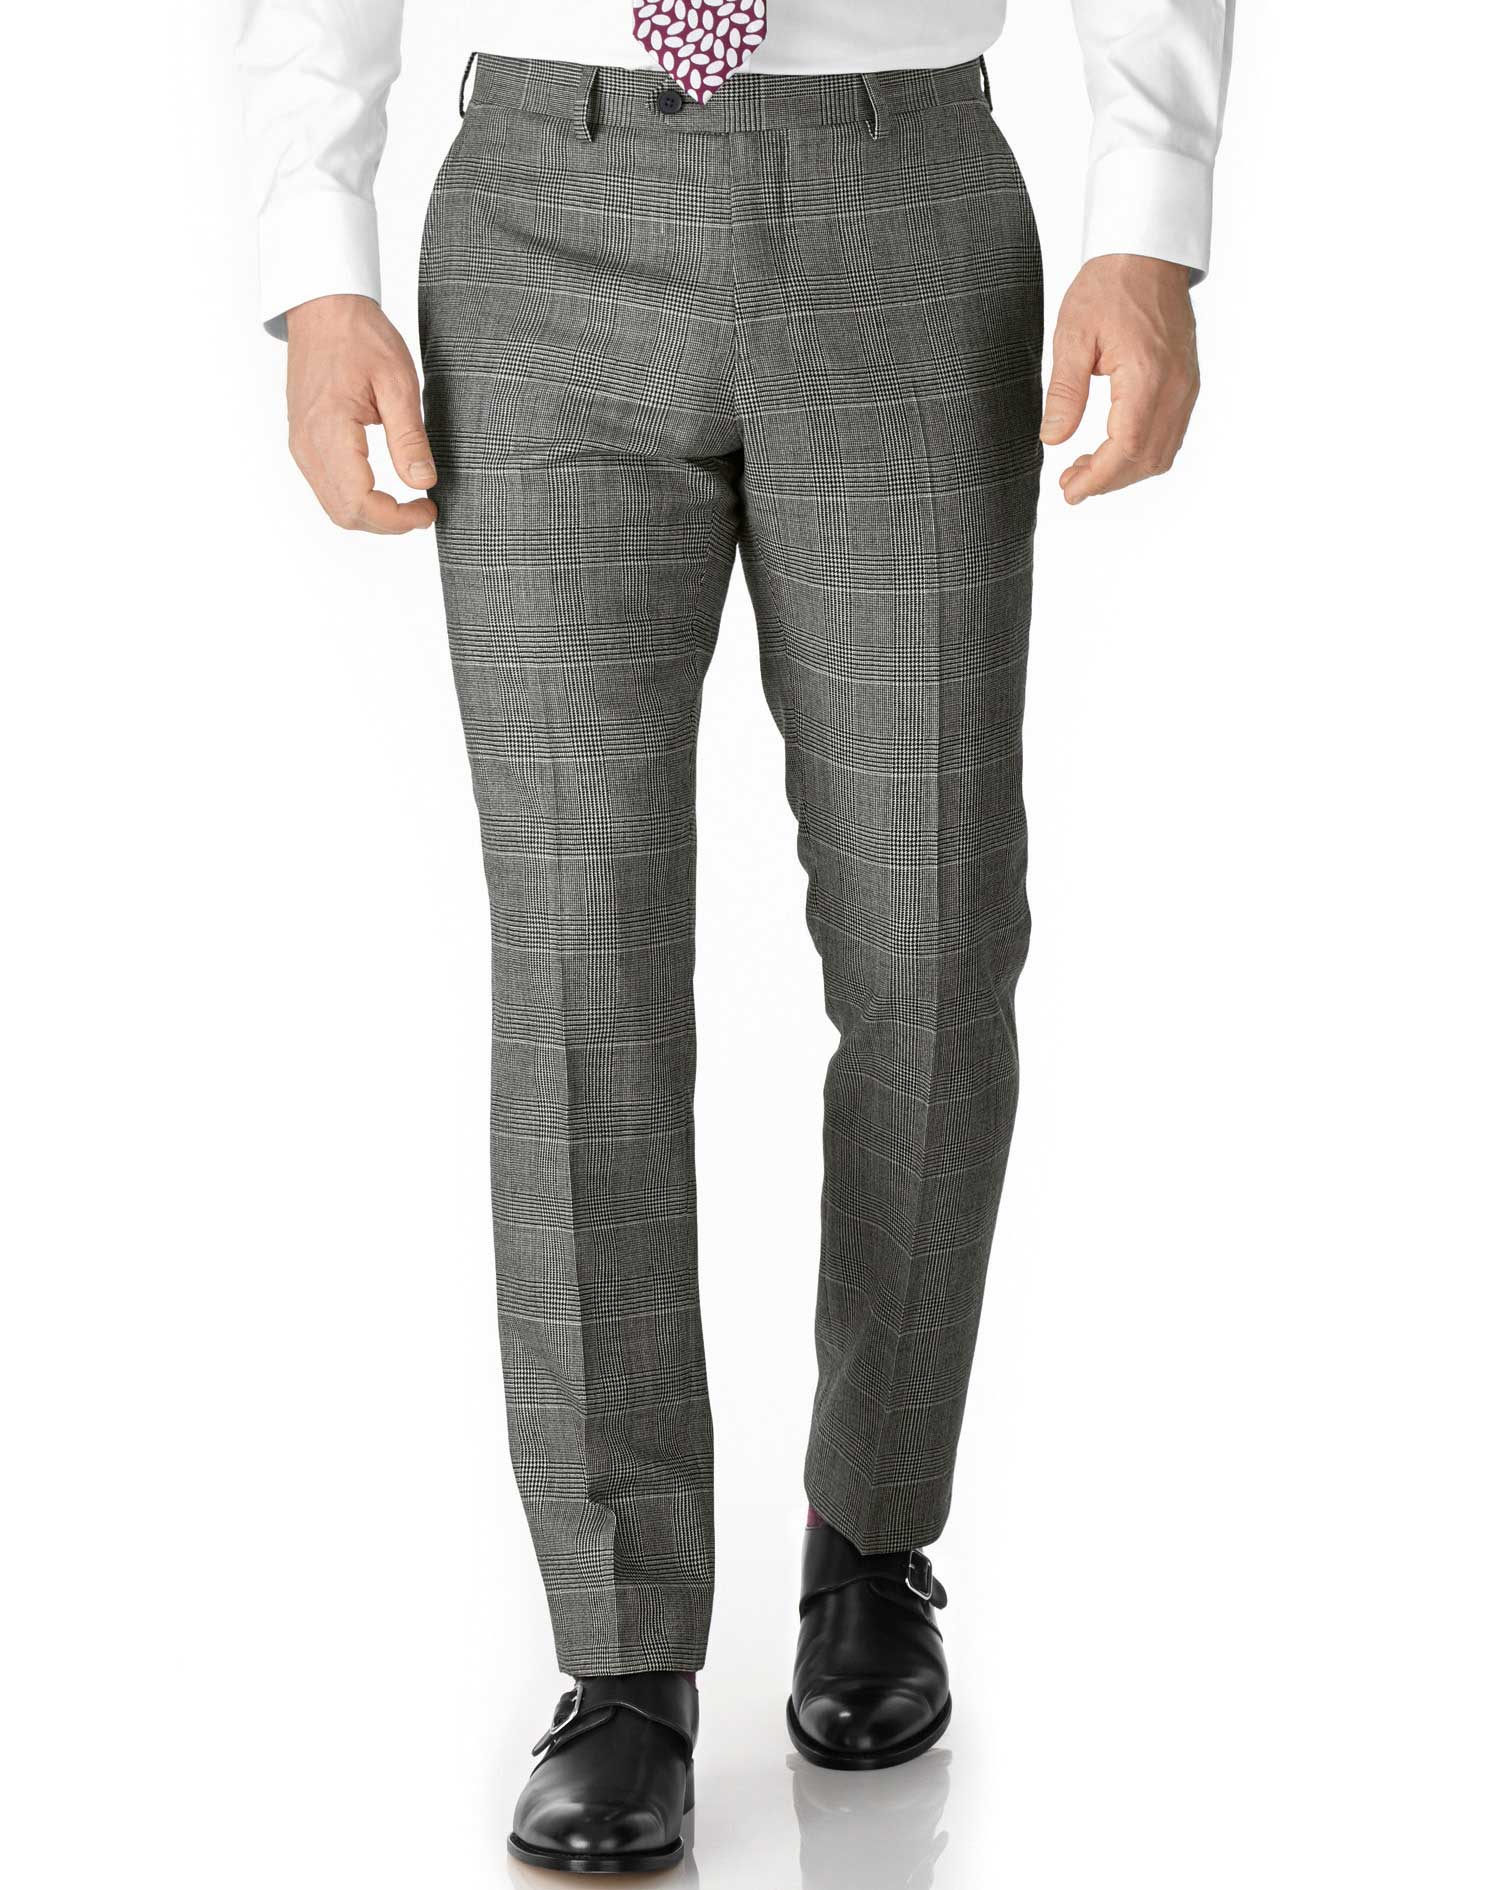 Grey Check Slim Fit Twill Business Suit Trouser Size W40 L32 by Charles Tyrwhitt